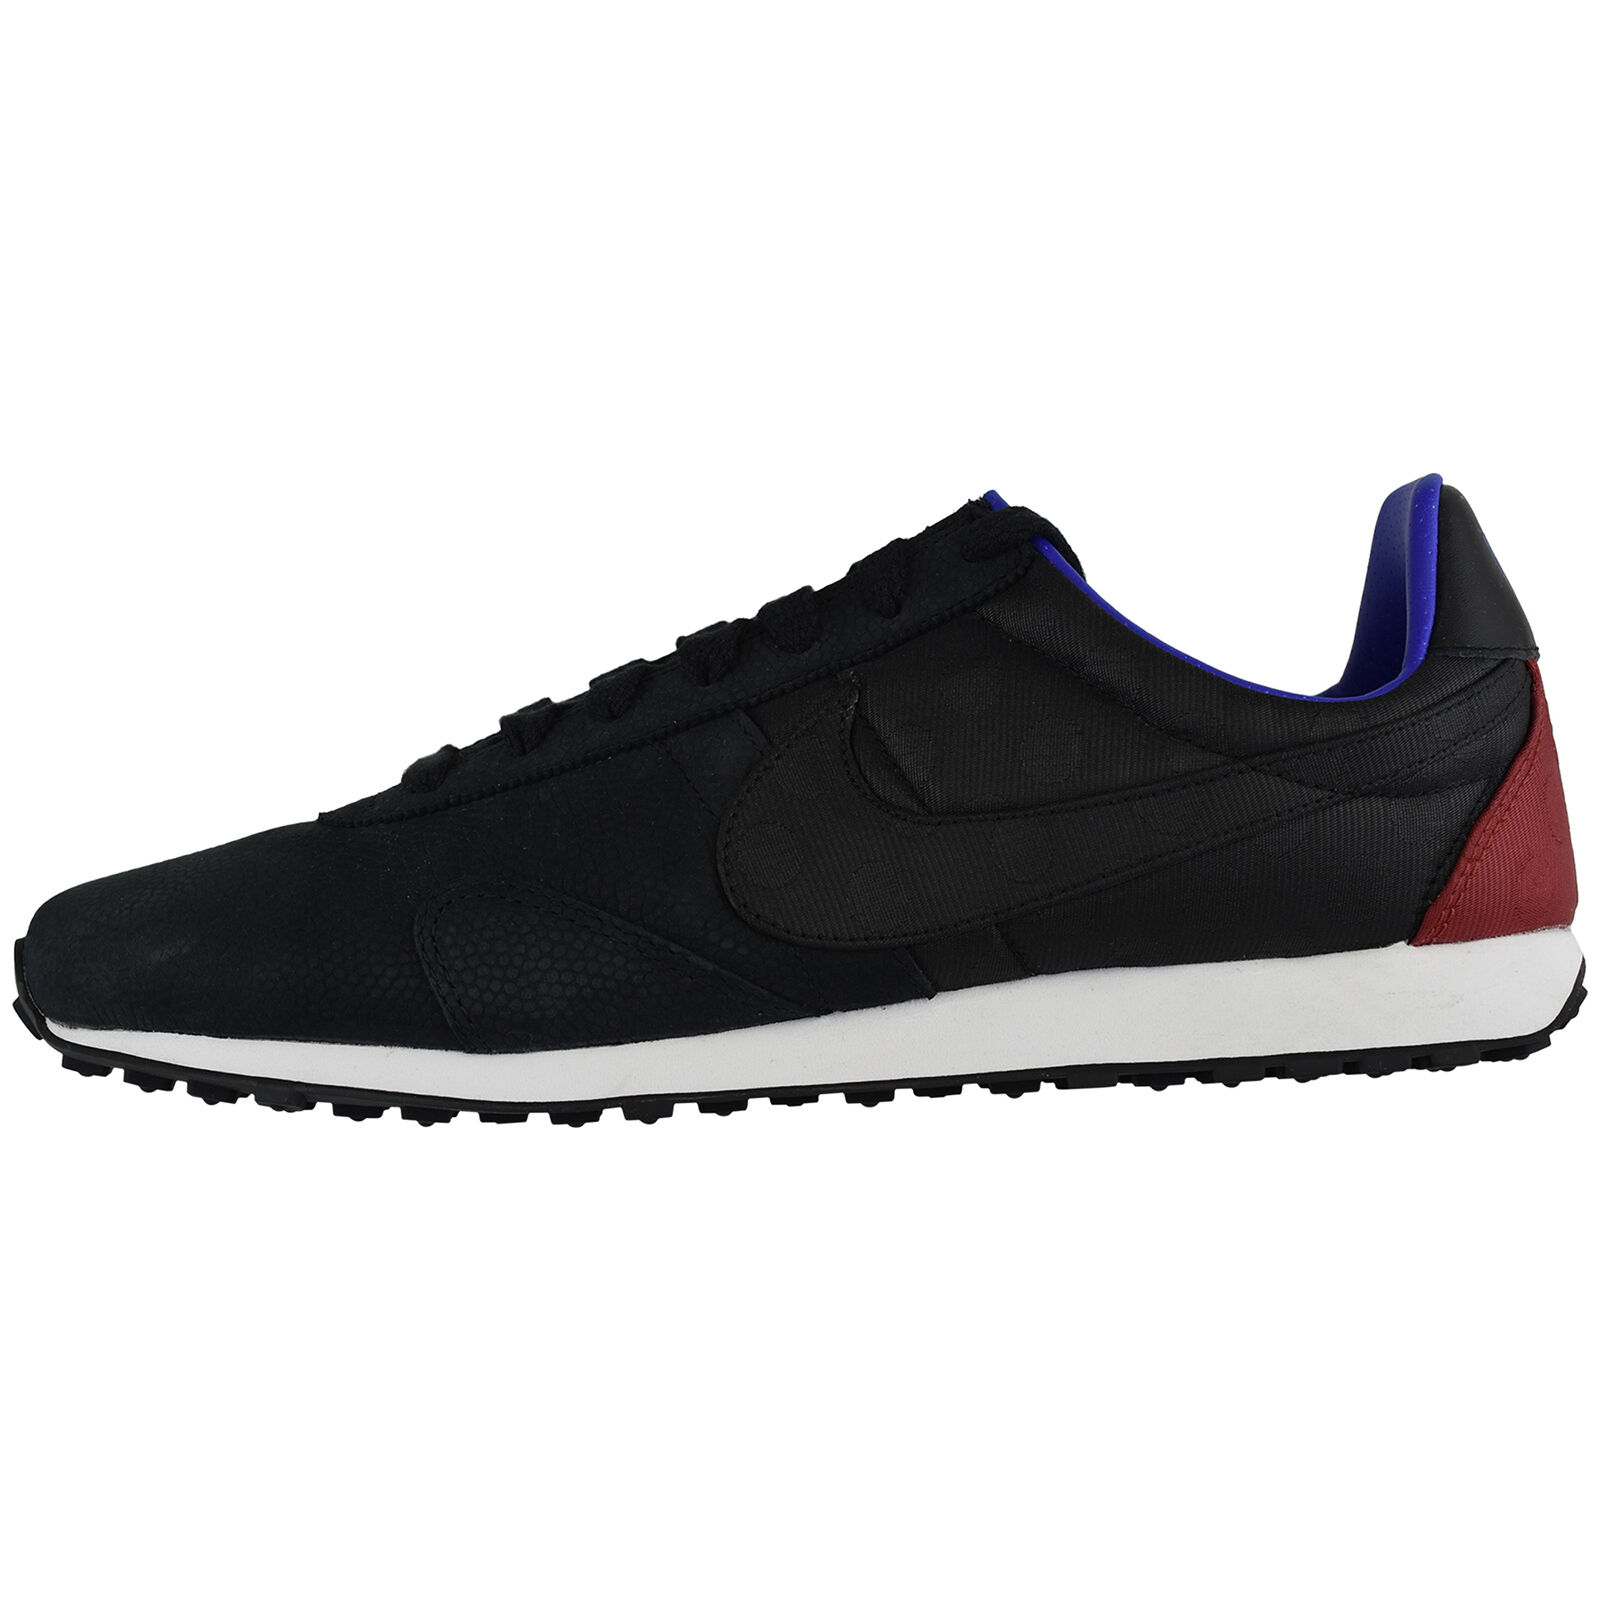 WMNS NIKE W Pre Montreal Racer Vintage 828436-004 Sneakers Running shoes Casual